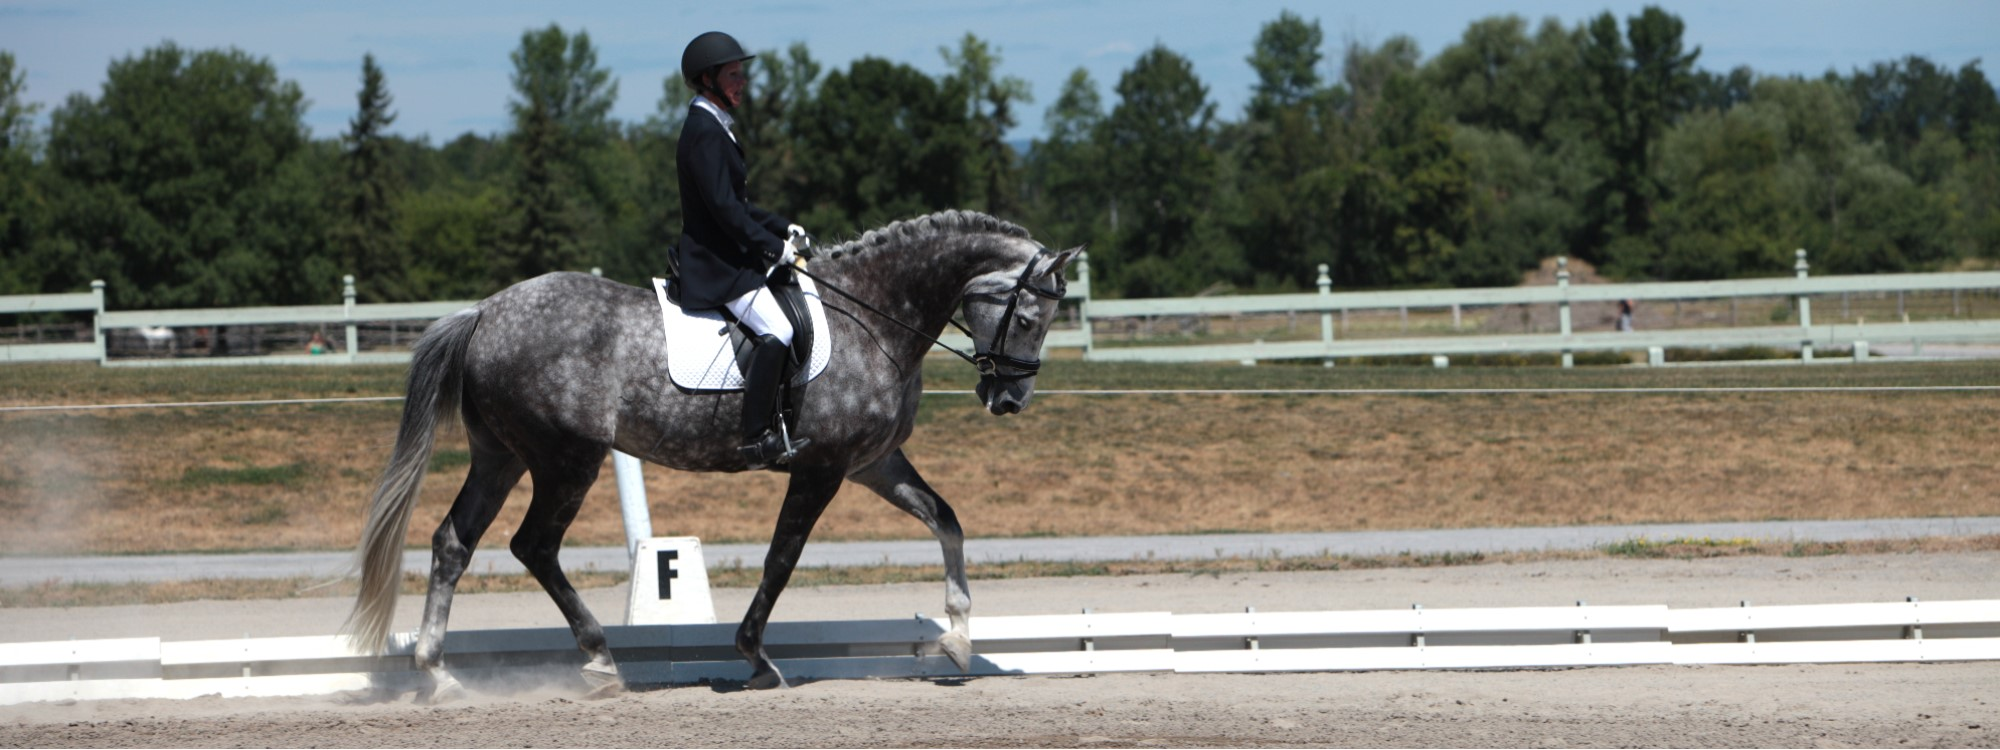 tip on how to improve an equestrians dressage scores